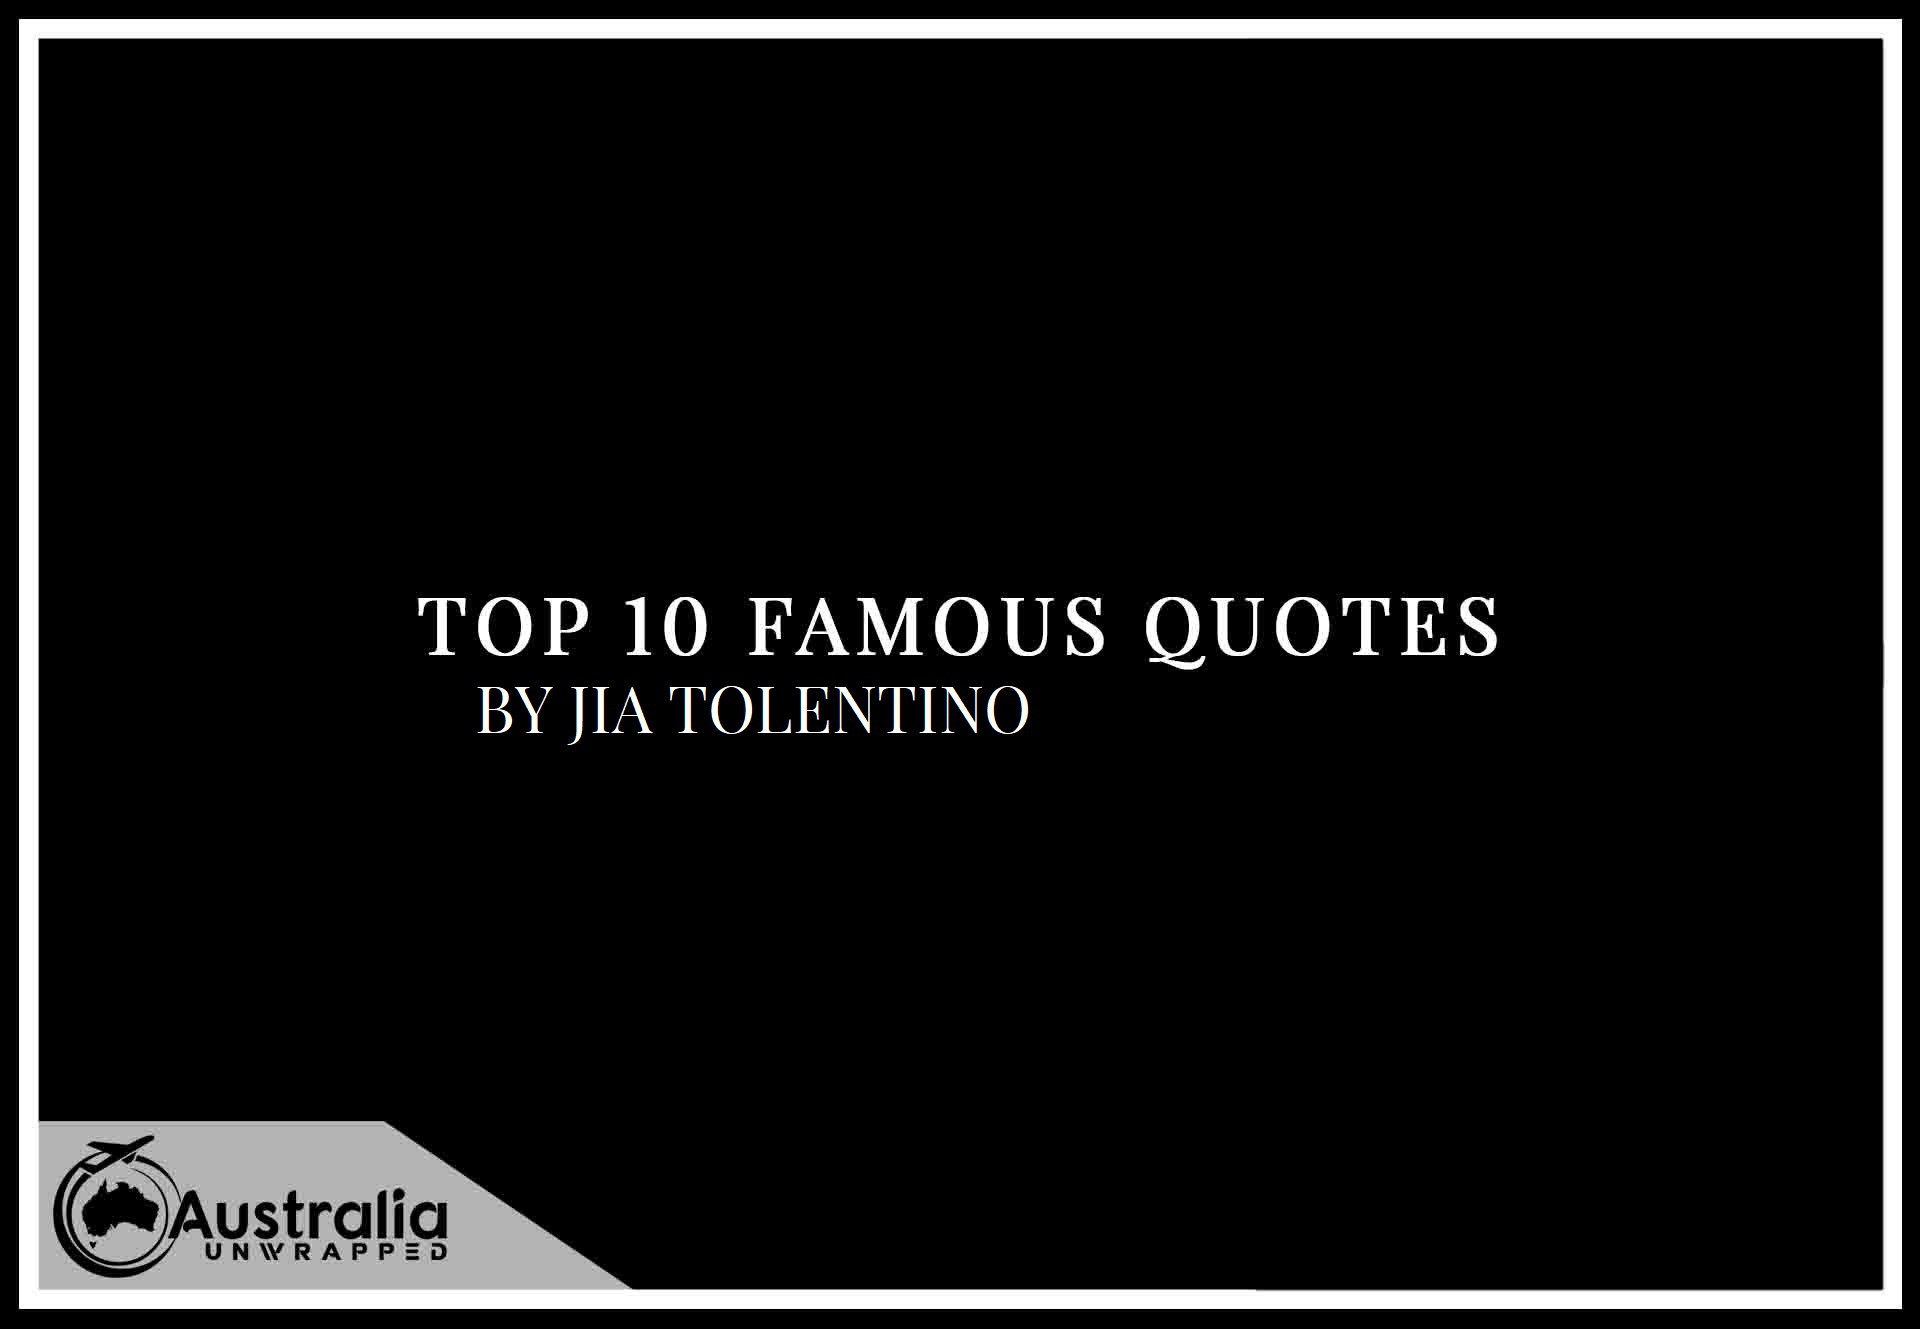 Top 10 Famous Quotes by Author Jia Tolentino